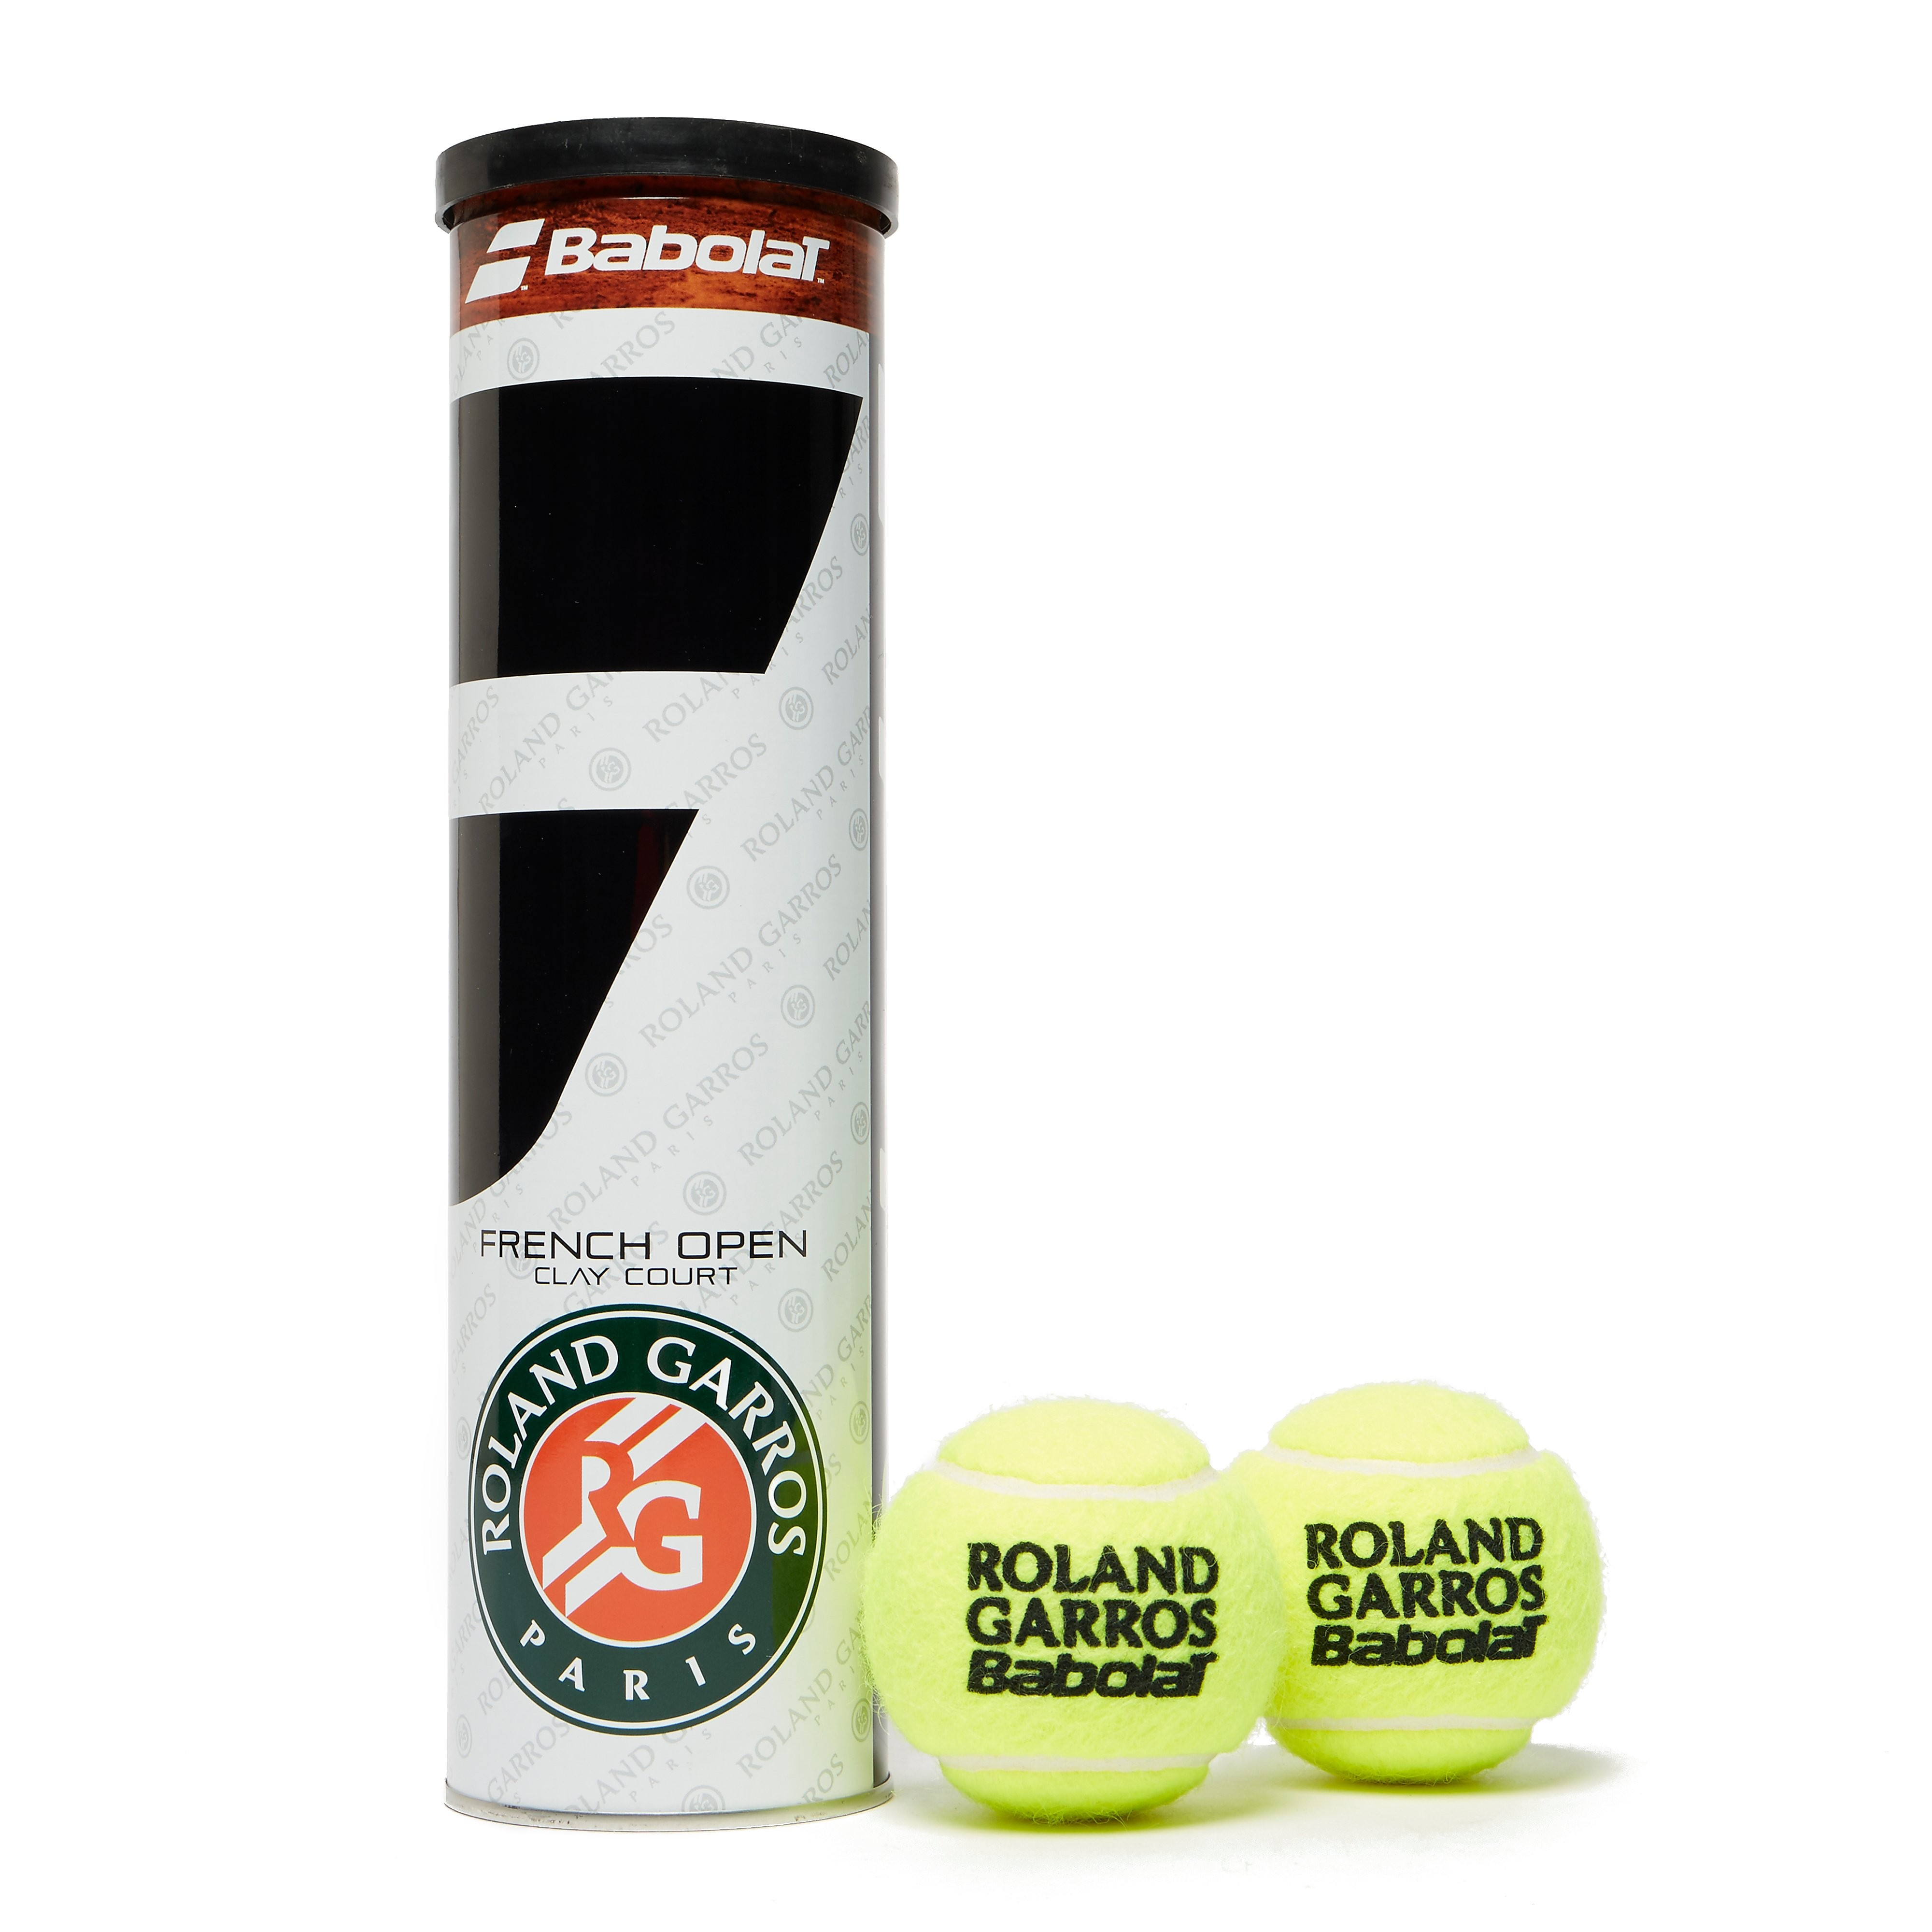 Babolat French Open Tennis Ball (4 Ball Can)